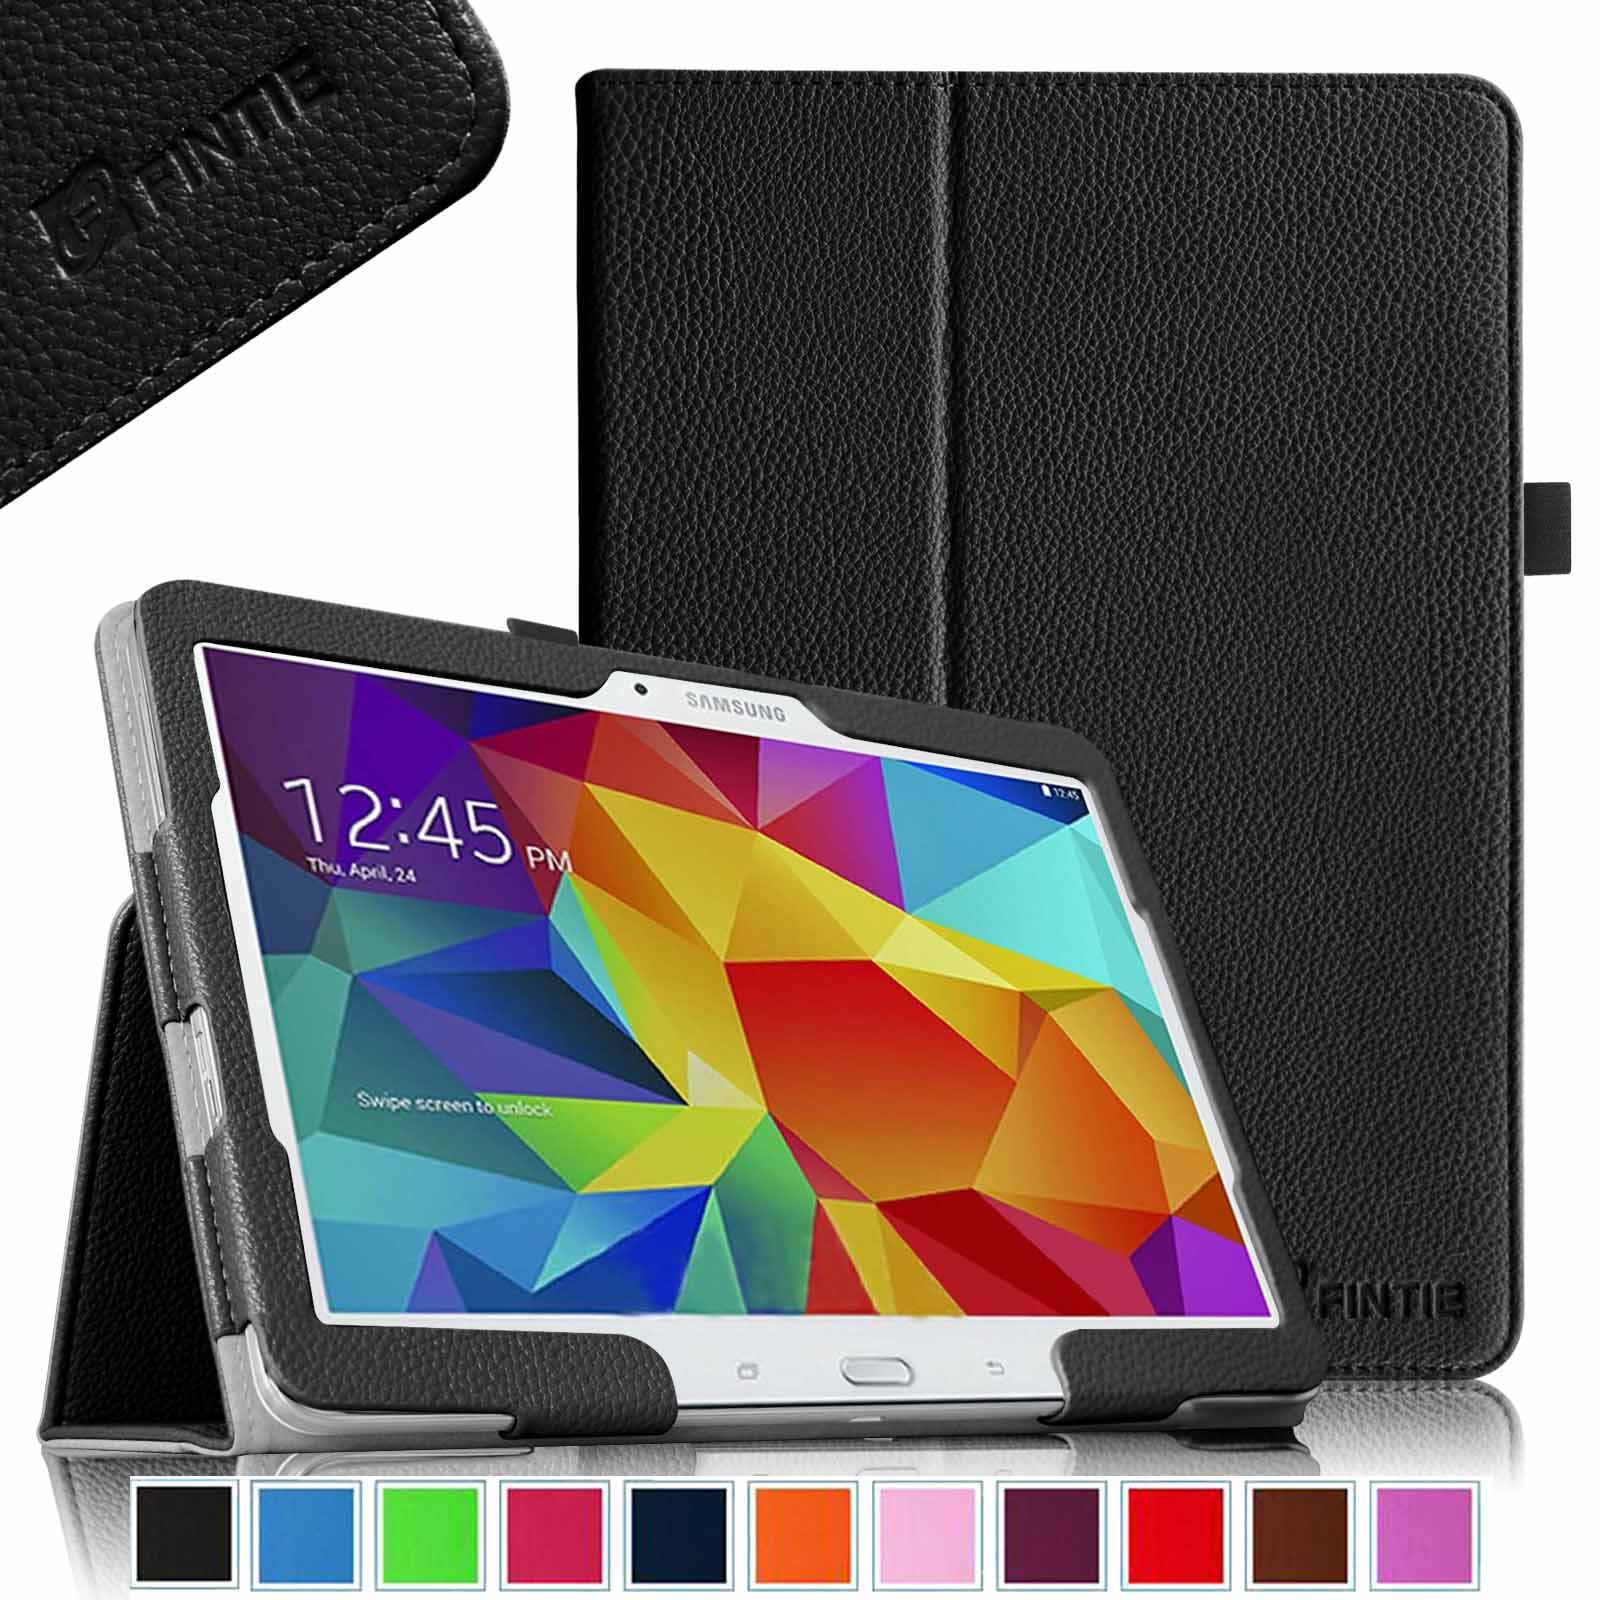 sneakers for cheap 0e55f c3616 Fintie Samsung Galaxy Tab 4 10.1 / Tab 4 Nook 10.1 Folio Case - Slim Fit PU  Leather Cover with Auto Sleep/Wake, Black